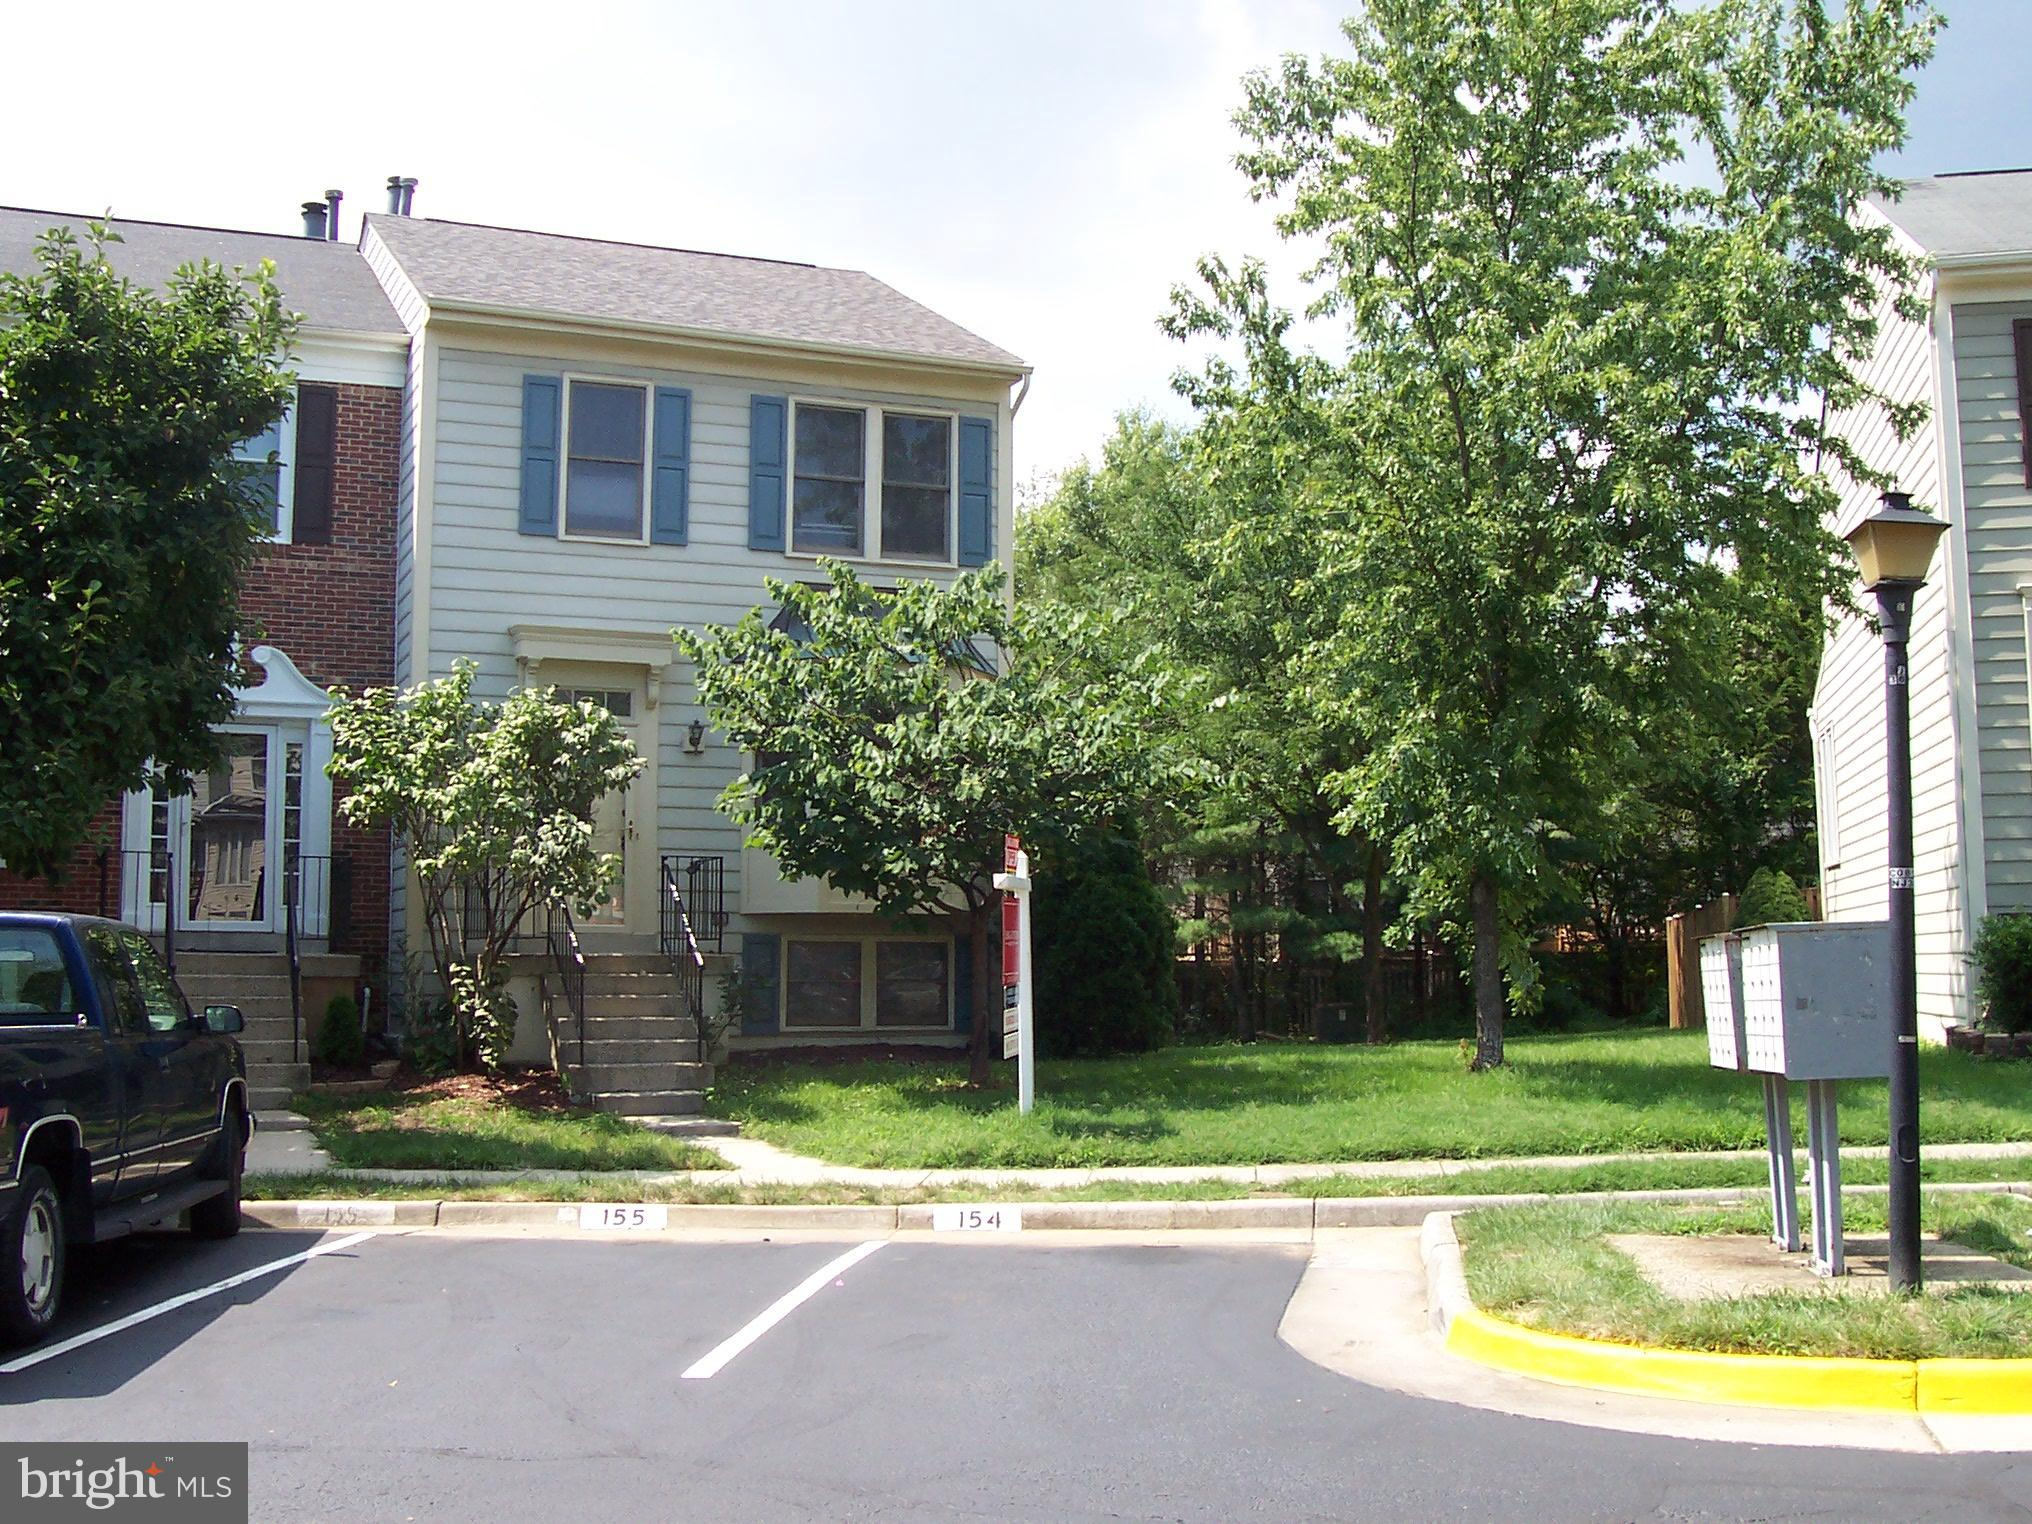 PRICE REDUCED. Nice 3 level, 3 BR , 3 1/2 Bath,End unit townhouse in Kingstowne for under $500,000. Updated, Granite Counters,Skylights. New Roof, Hot Water Heater and Washer in 2018.Two level deck, Lower level has full bath &  Rec Room With Fireplace. Walk out to lower level deck. Easy access to Springfield Metro, I-395 FFX Co Pky & Pentagon.